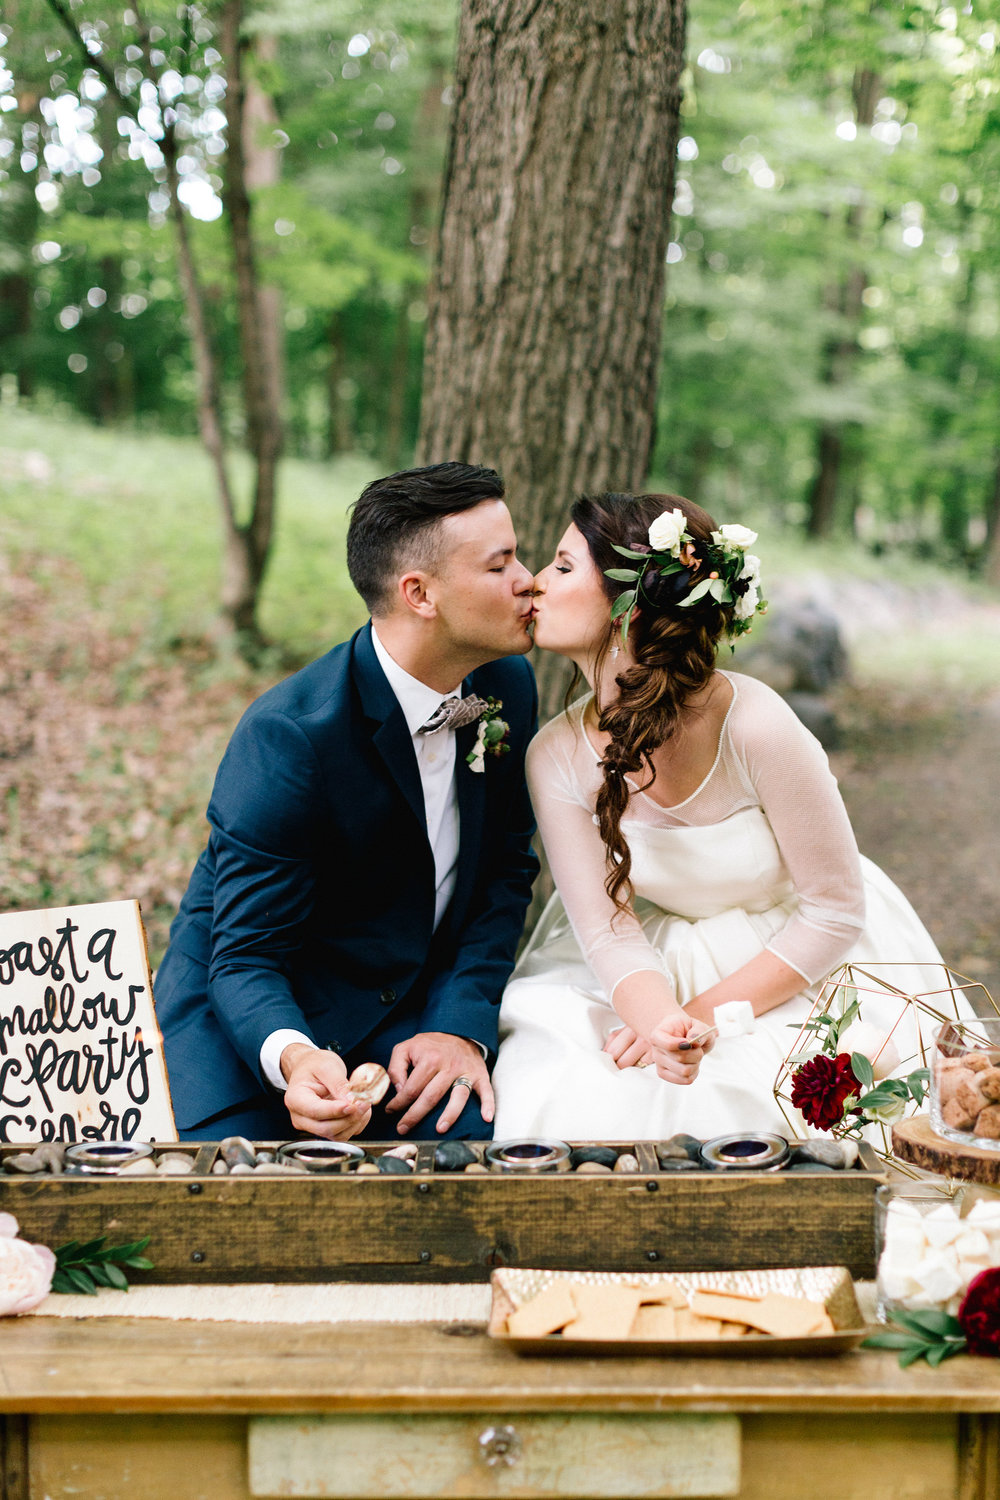 Allison_Hopperstad_Photography_Acowsay_Wedding_Smores_Kissing.JPG